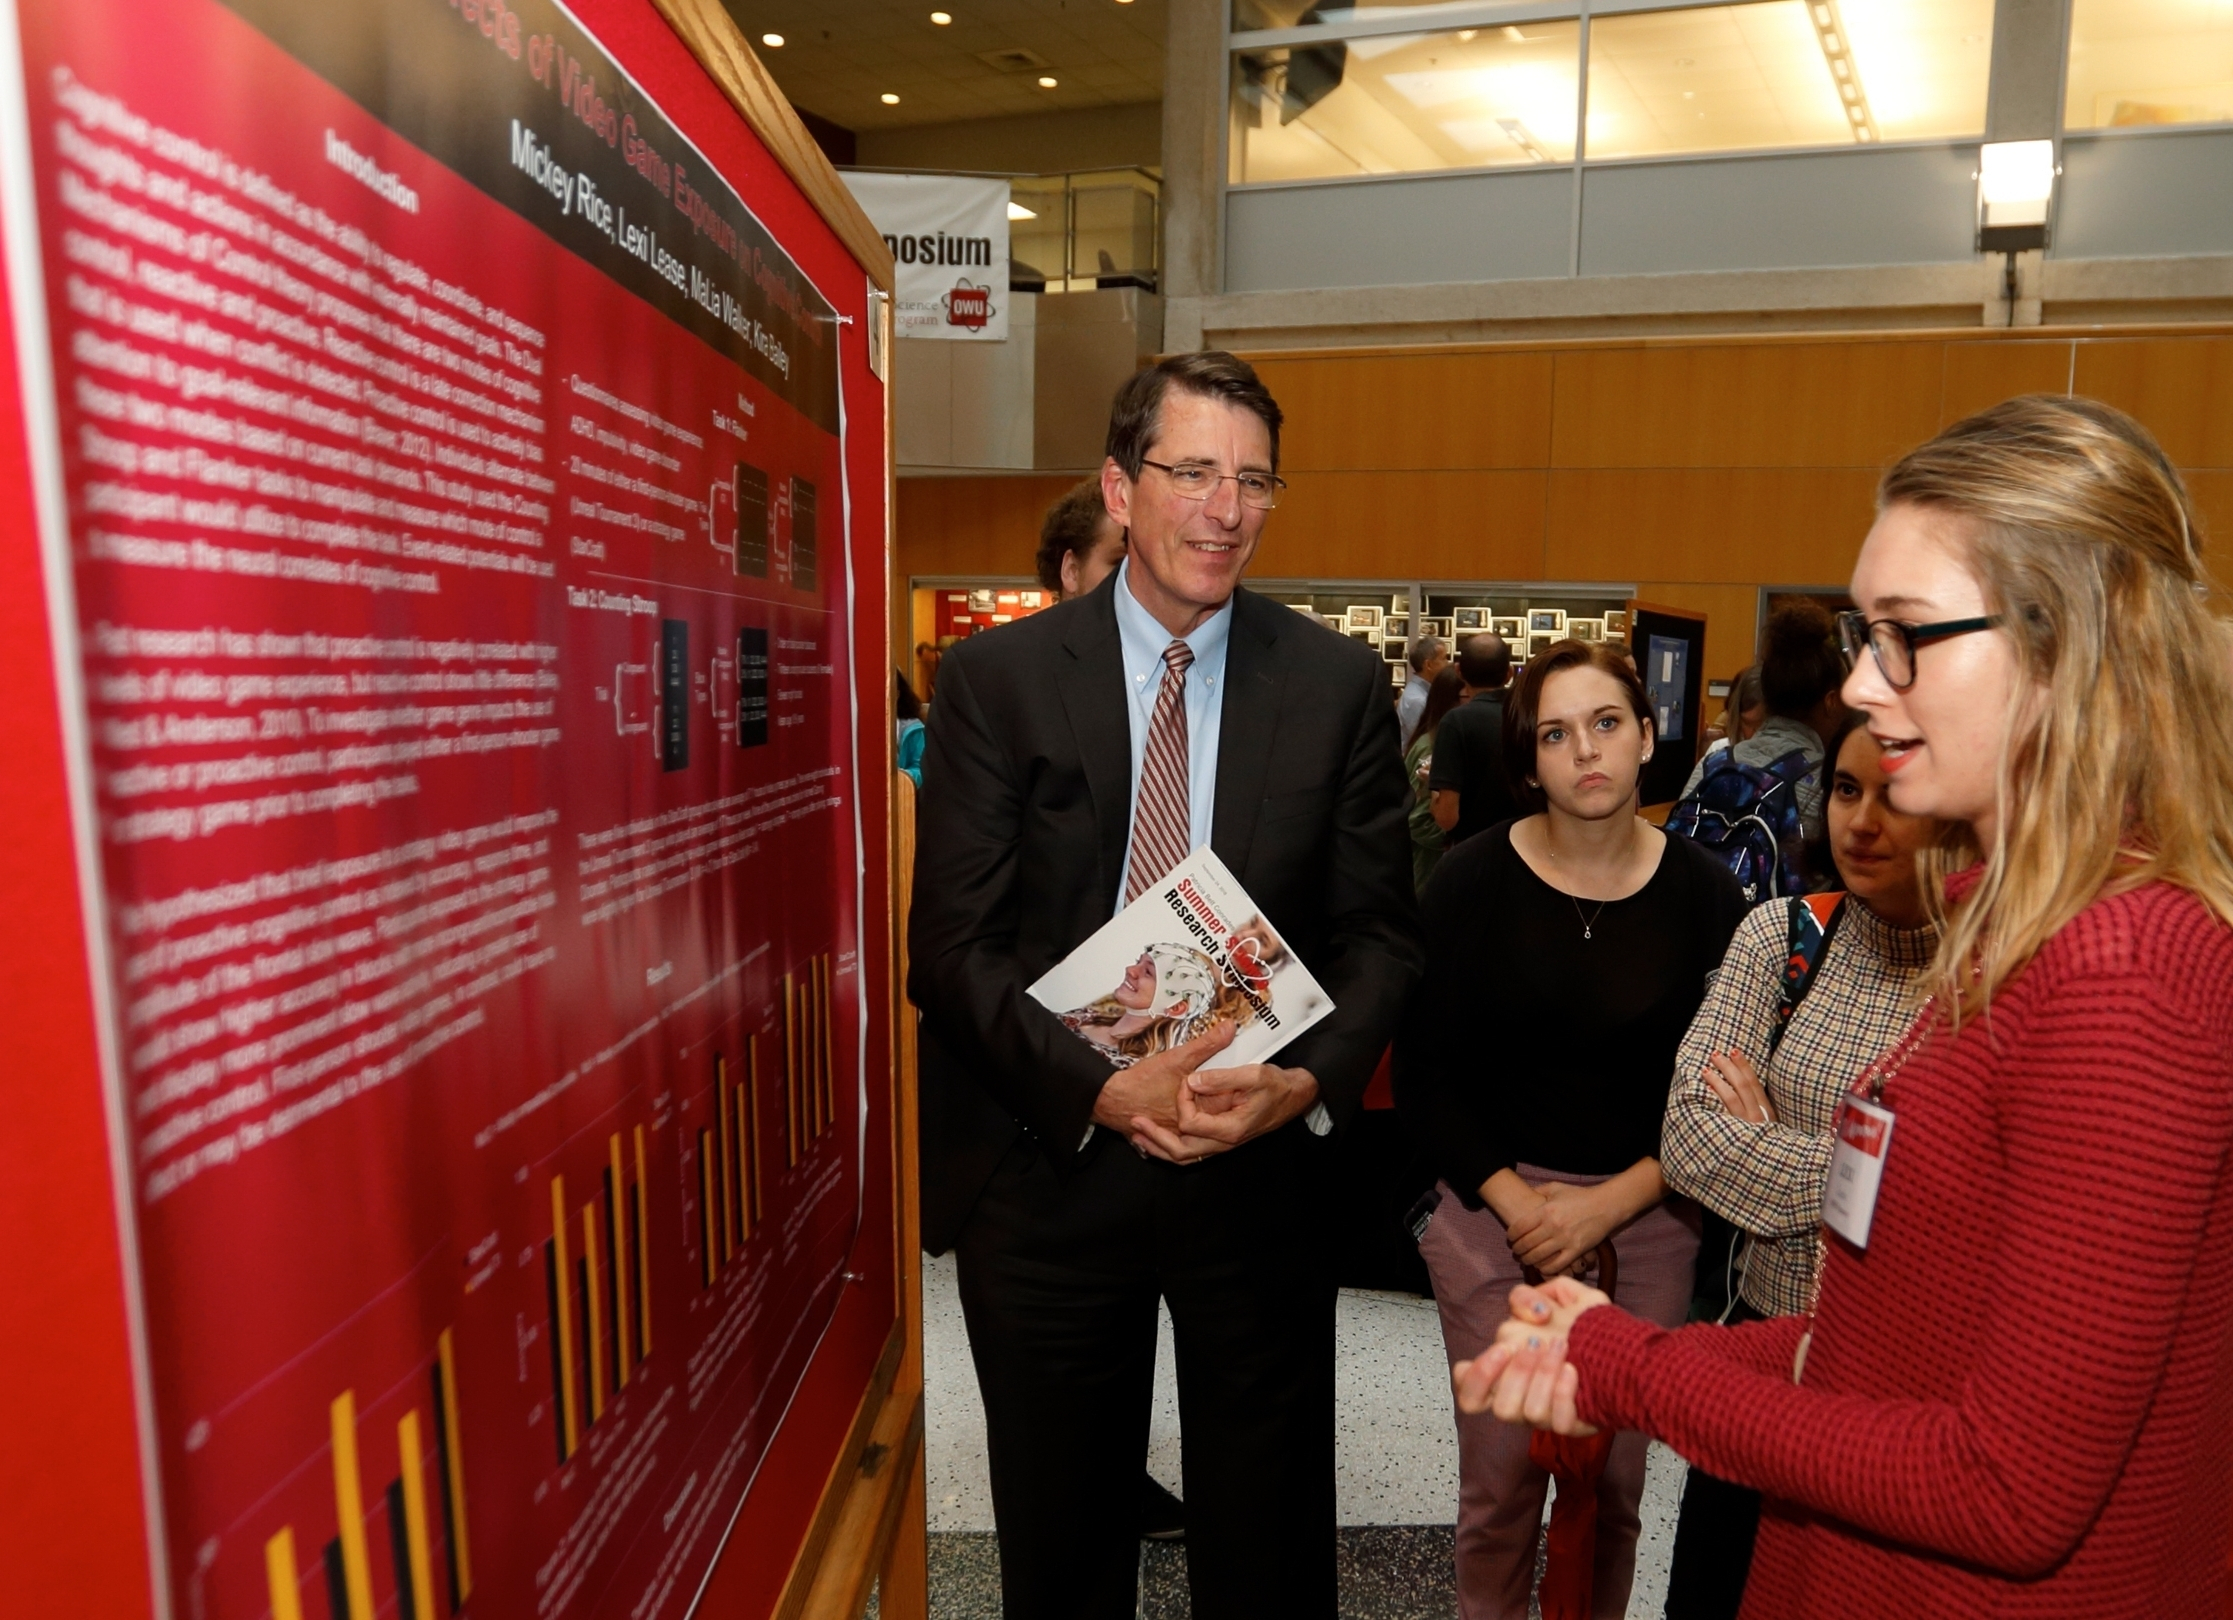 Owu summer science research symposium photo by paul vernon